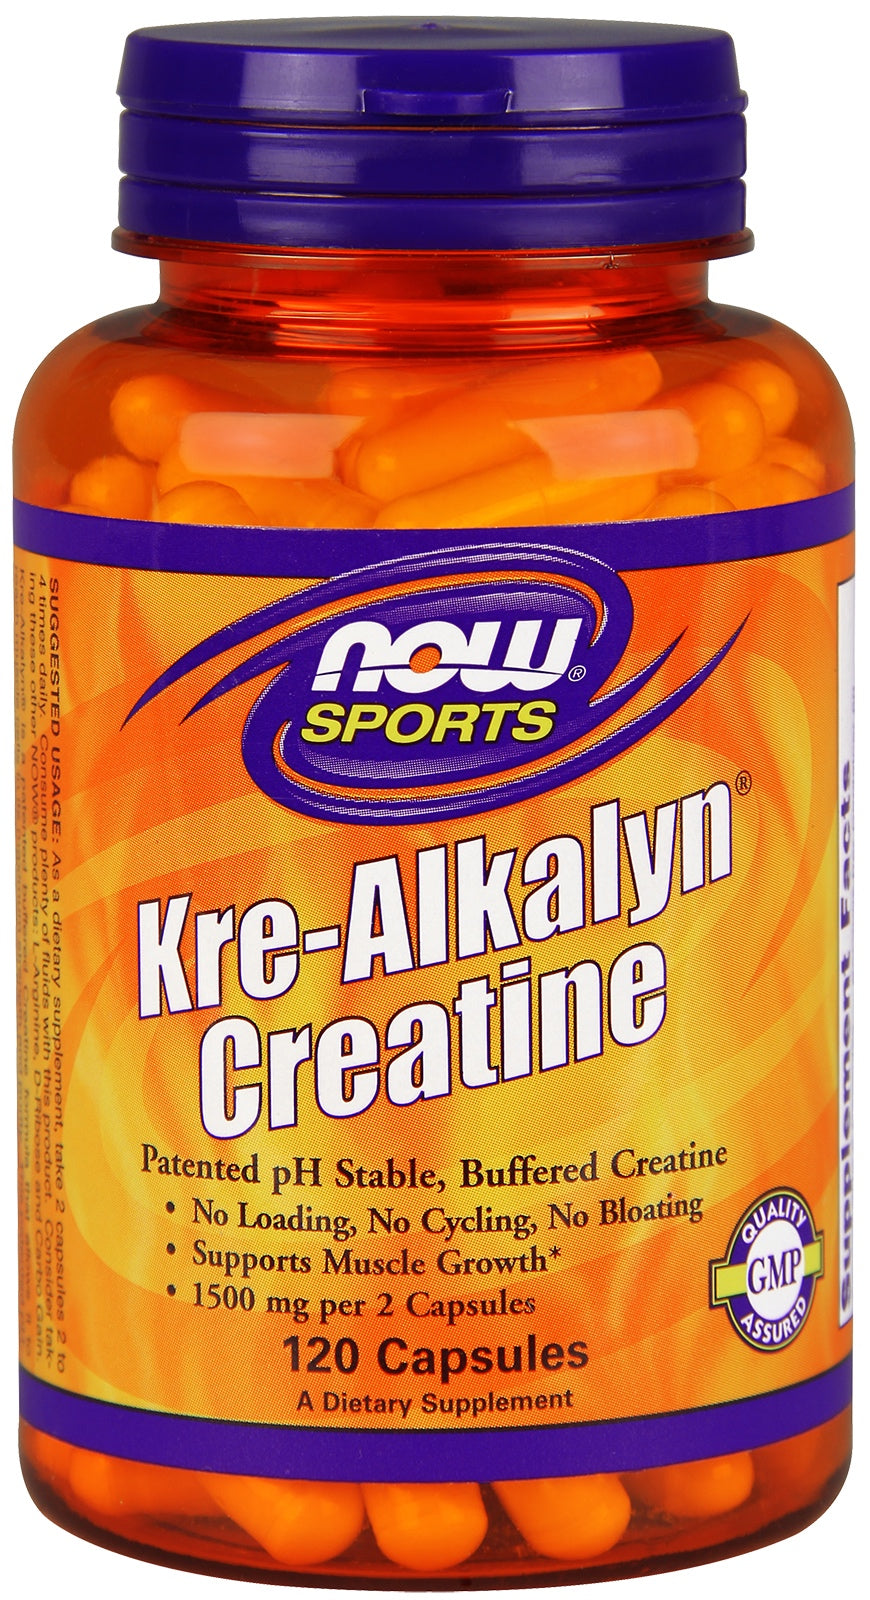 Kre-Alkalyn® Creatine Capsules